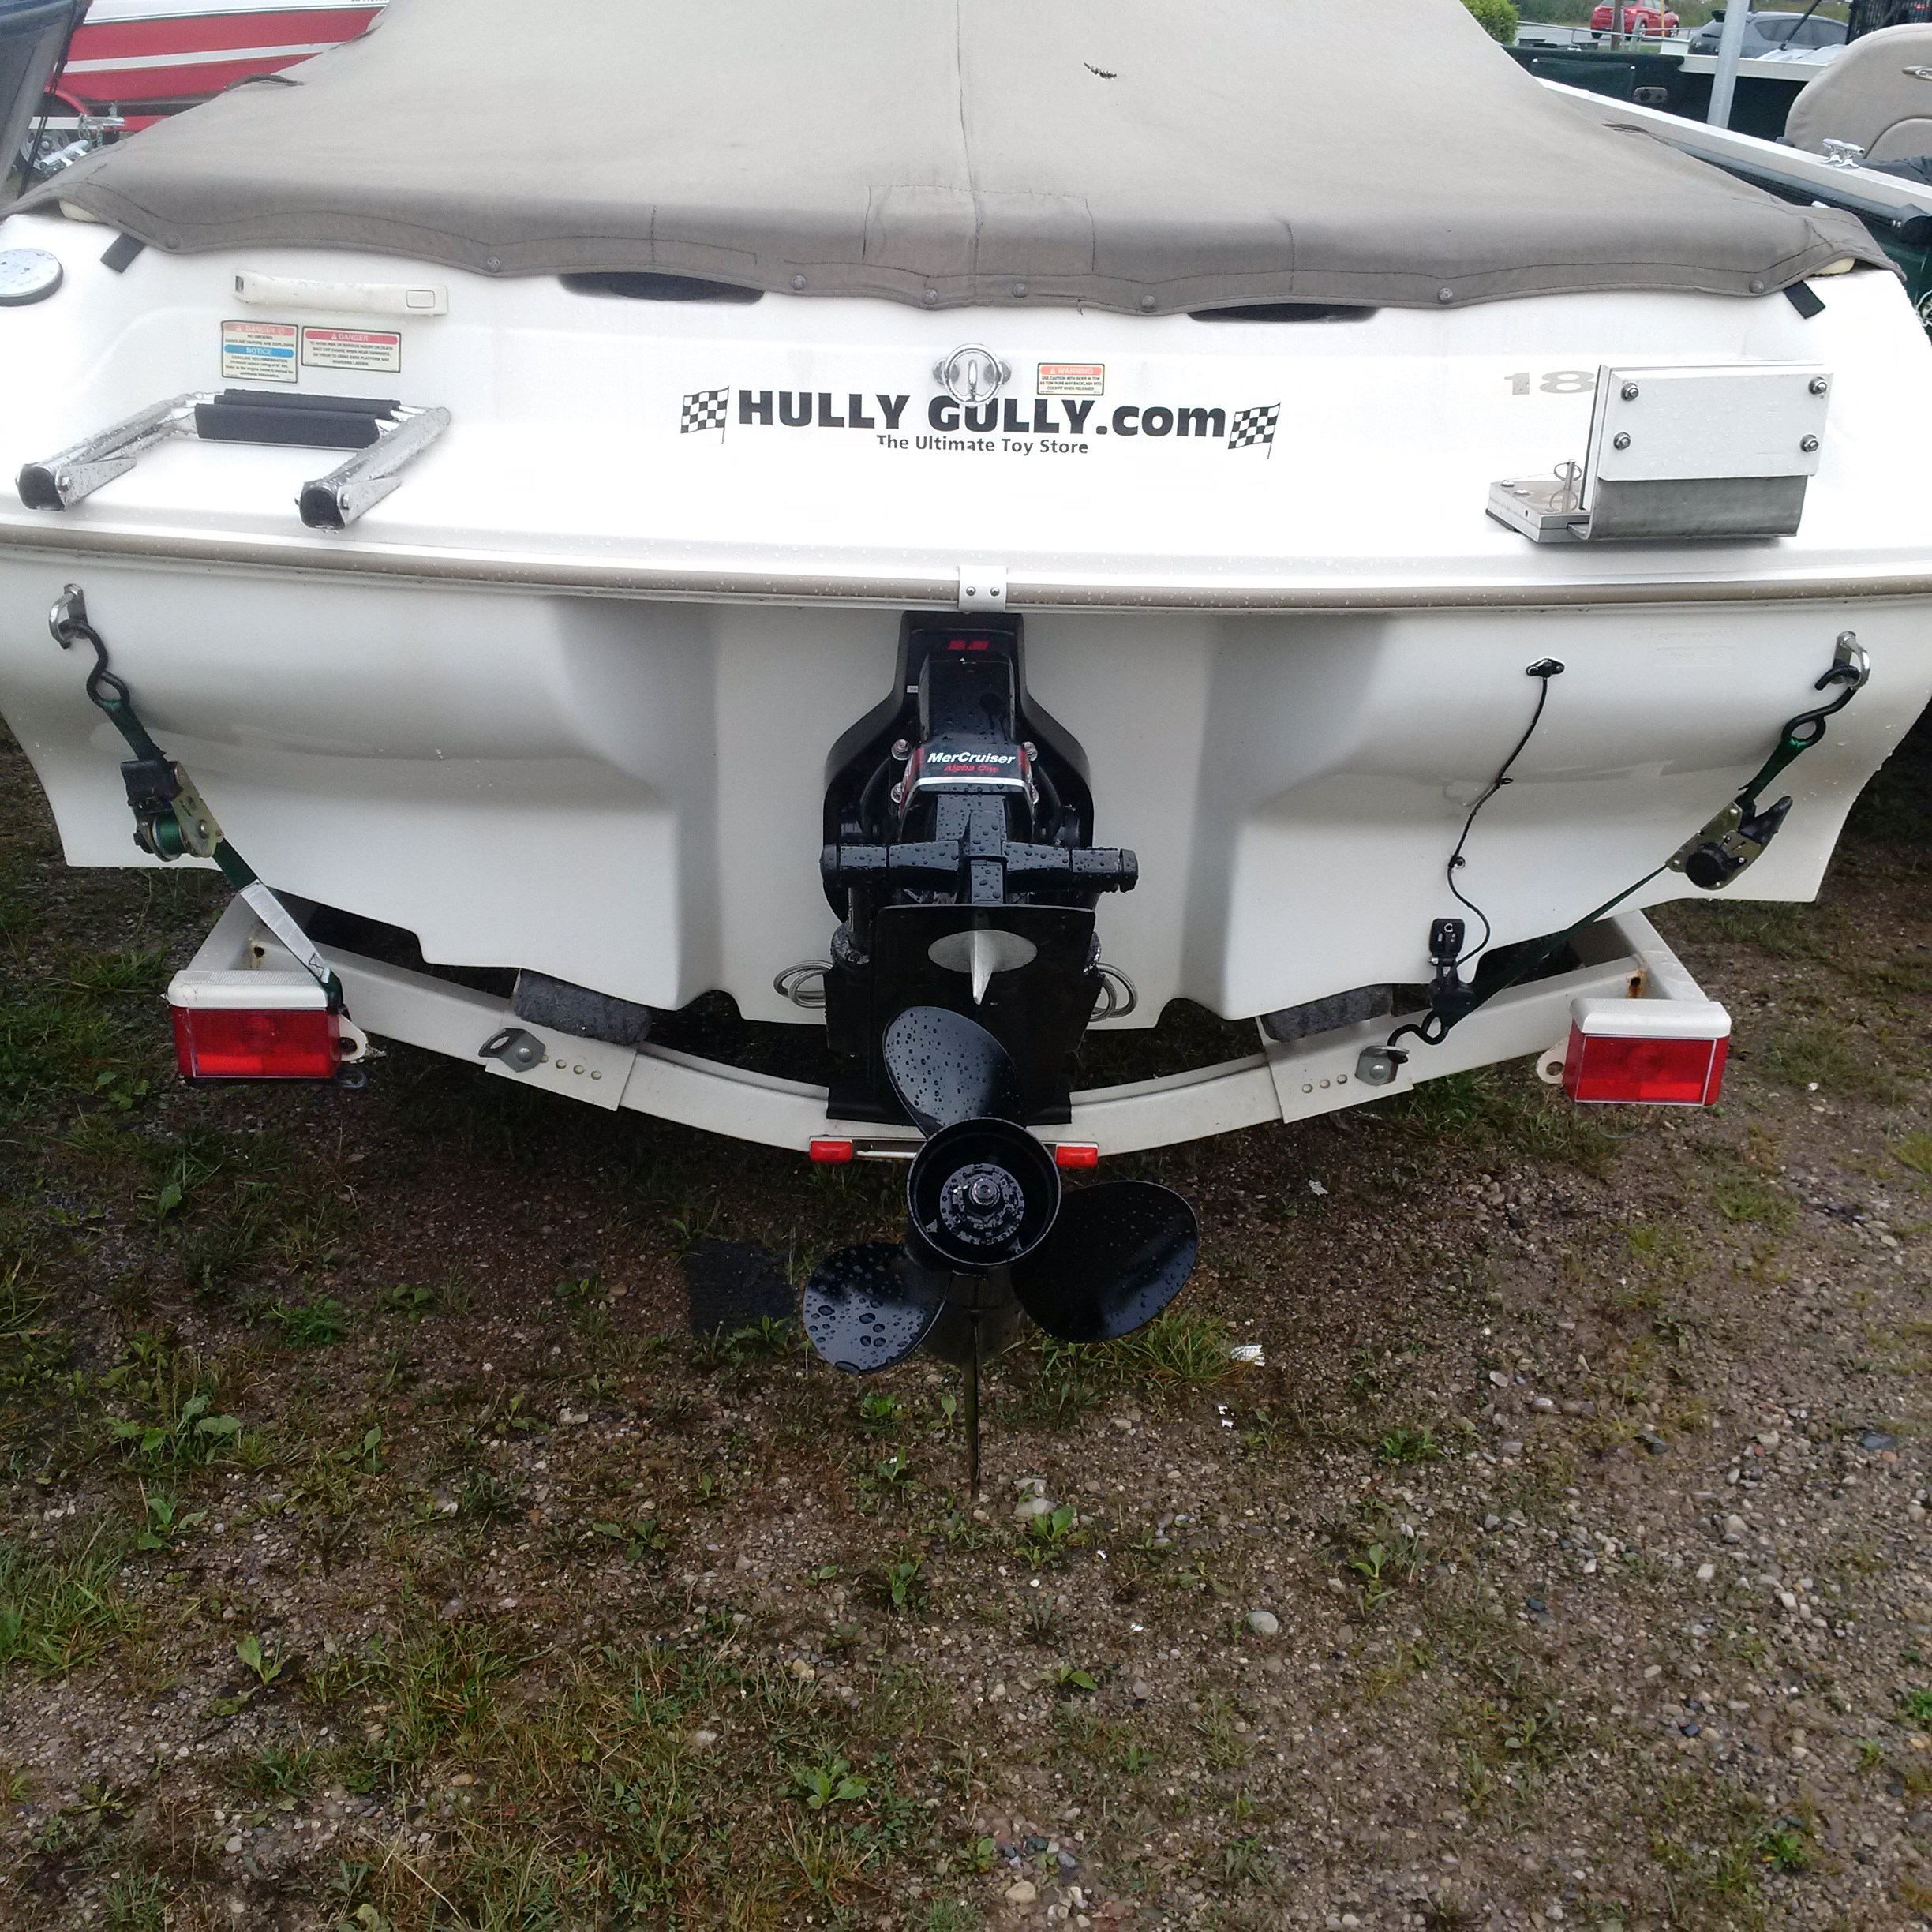 Sea ray 180 br 2000 used boat for sale in london ontario for Tow motor operator job description